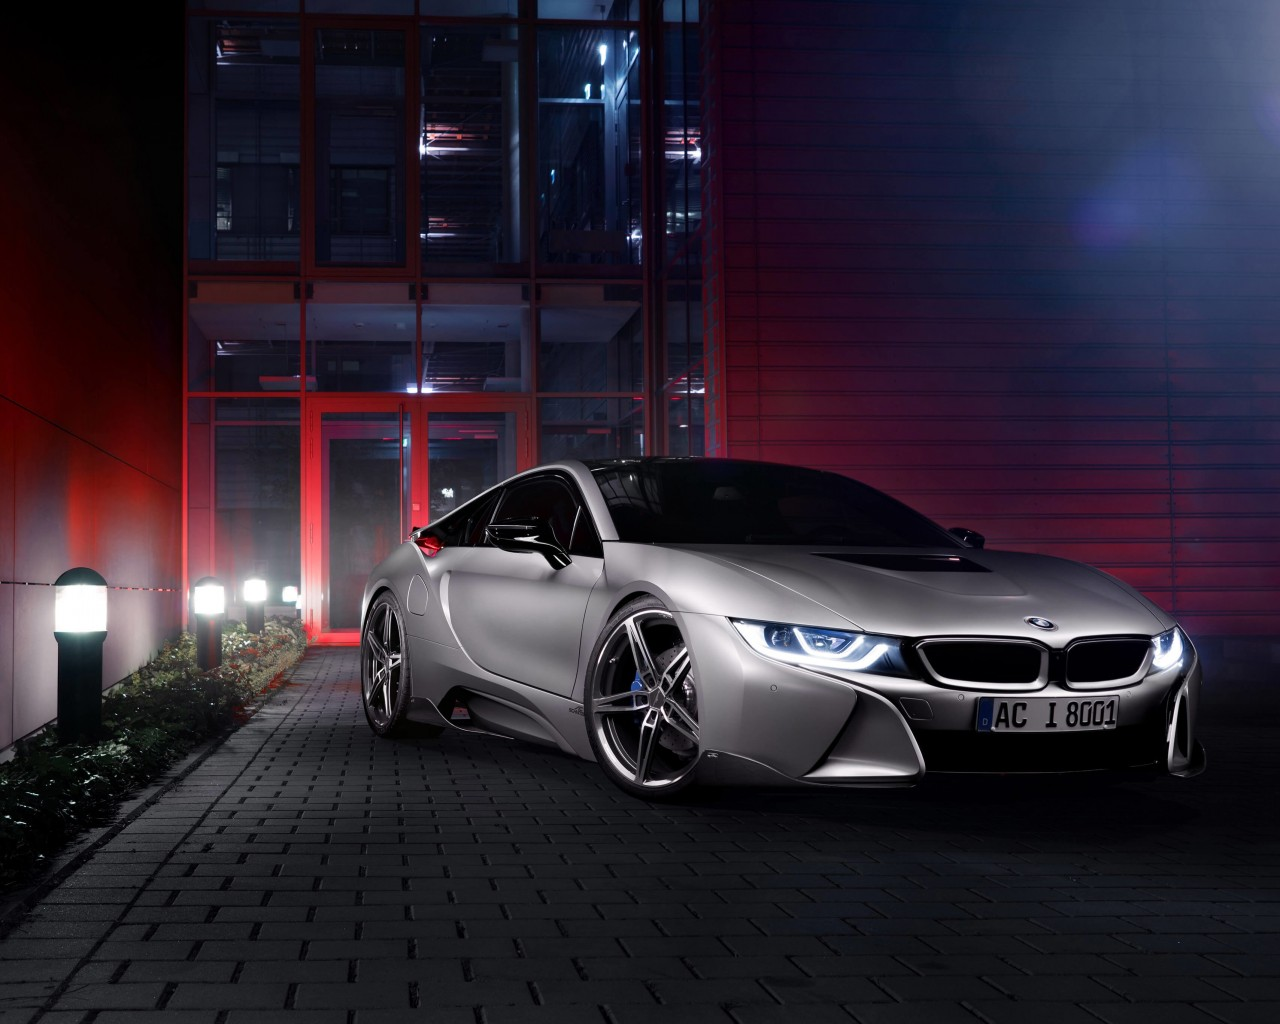 Download Bmw I8 Designed By Ac Schnitzer Hd Wallpaper For 1280 X 1024 Hdwallpapers Net